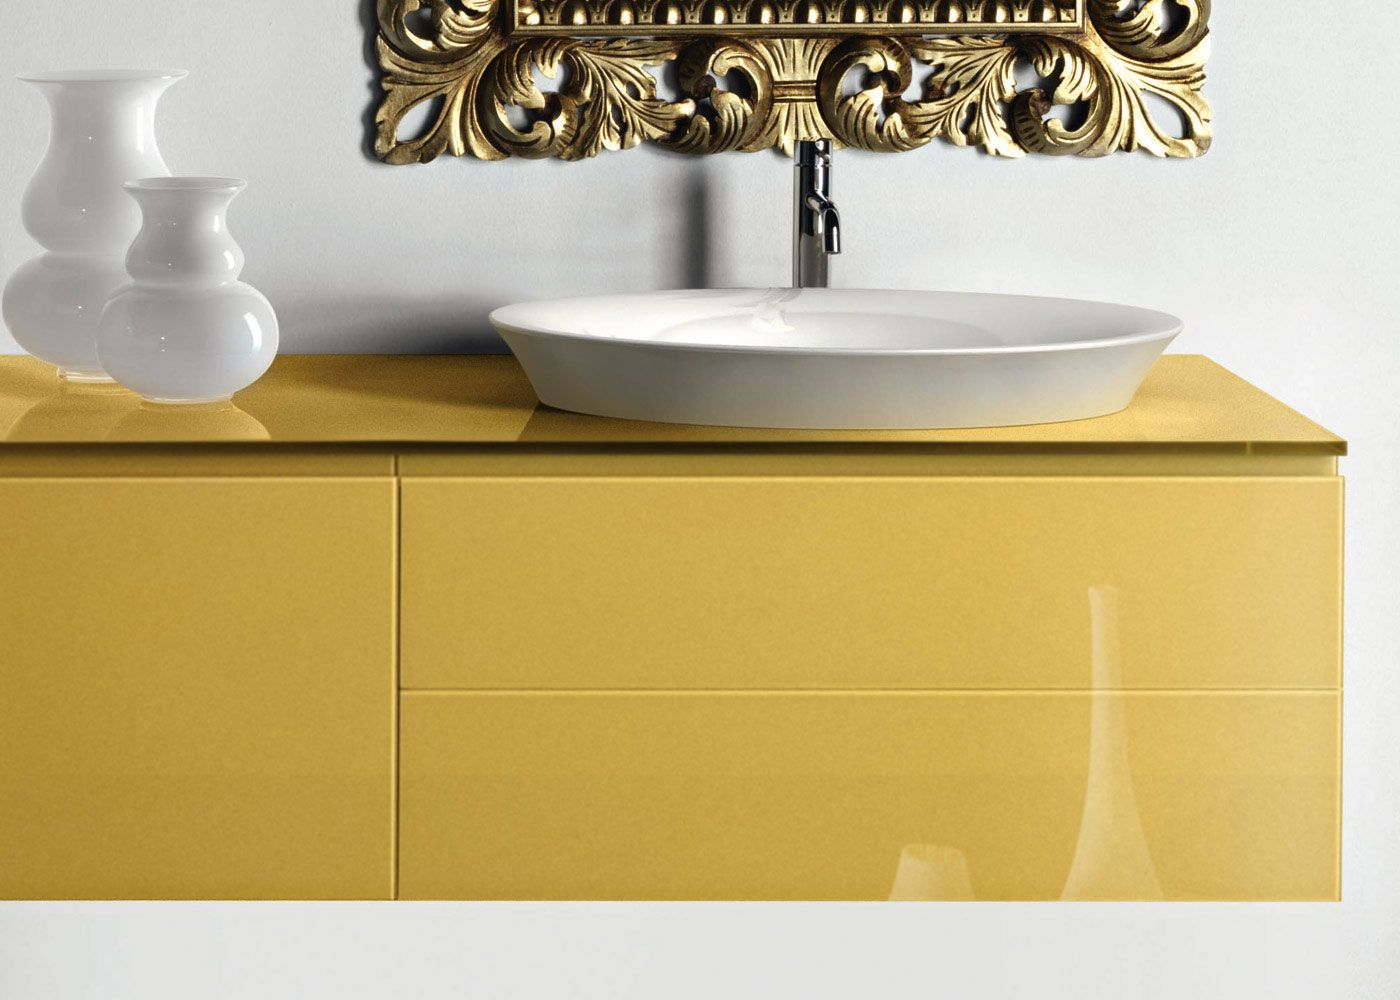 modern yellow bath vanity and countertop sink by artelinea, Badezimmer ideen